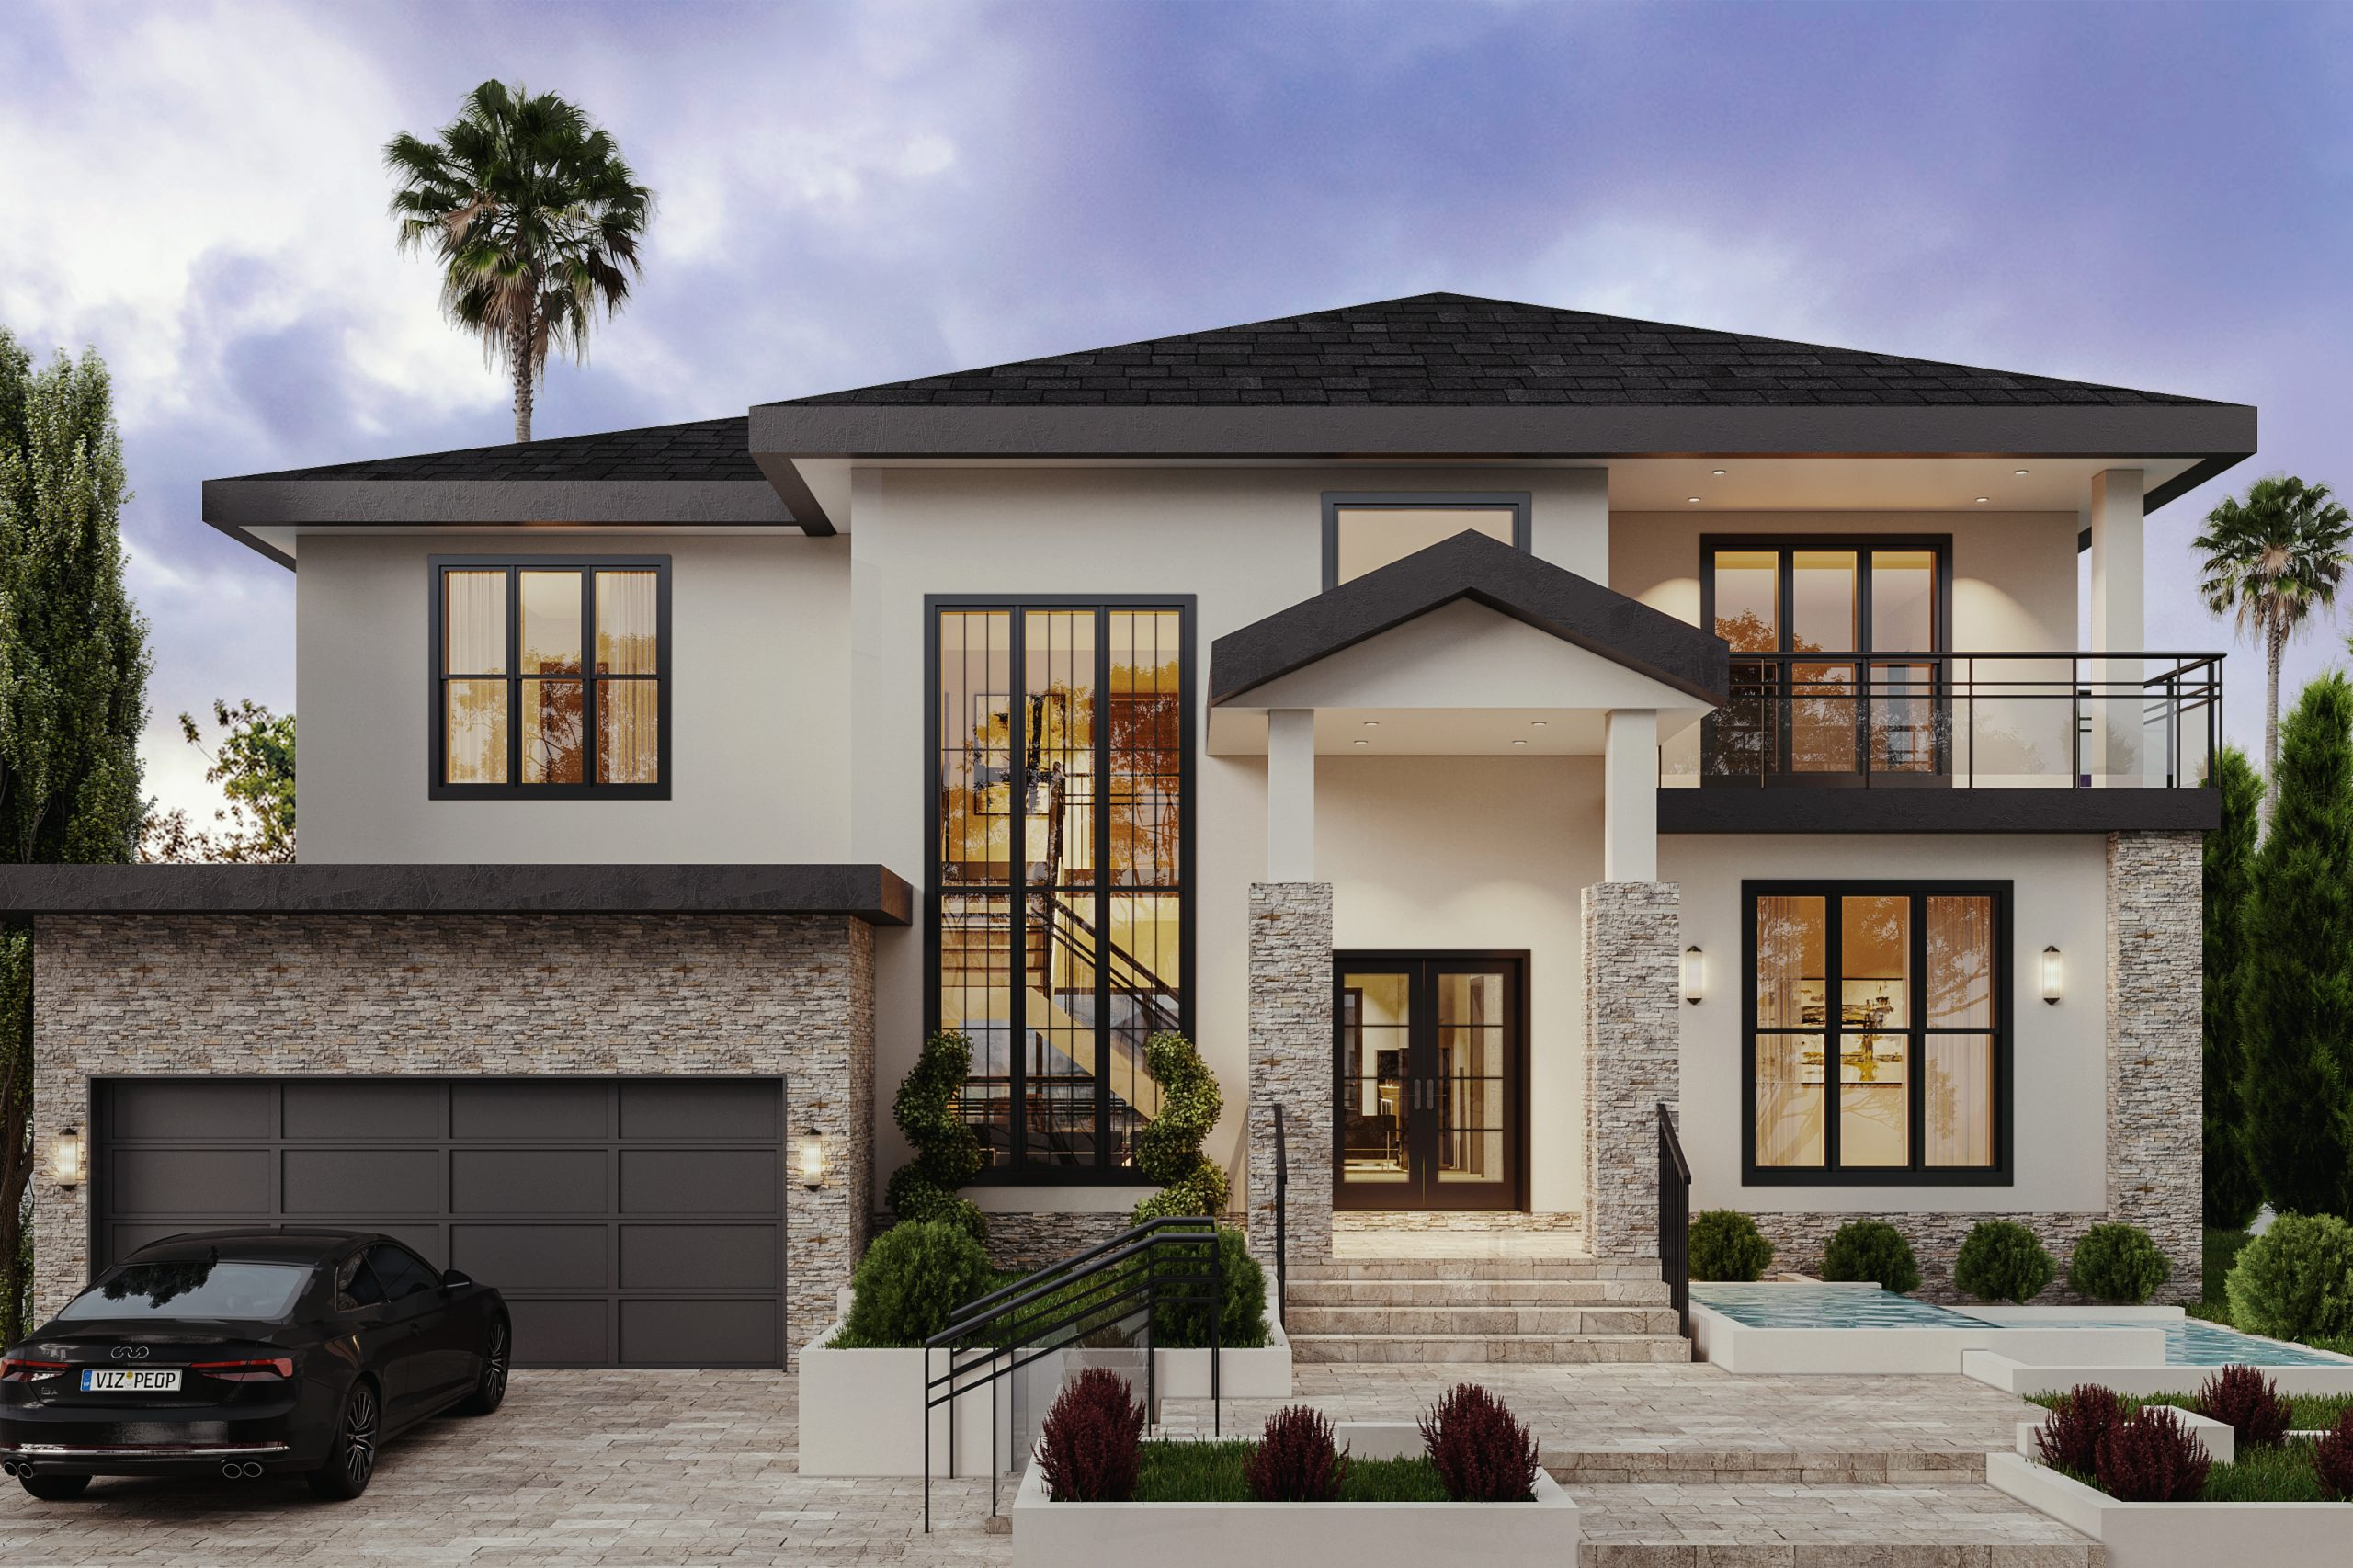 Add a second story to the house